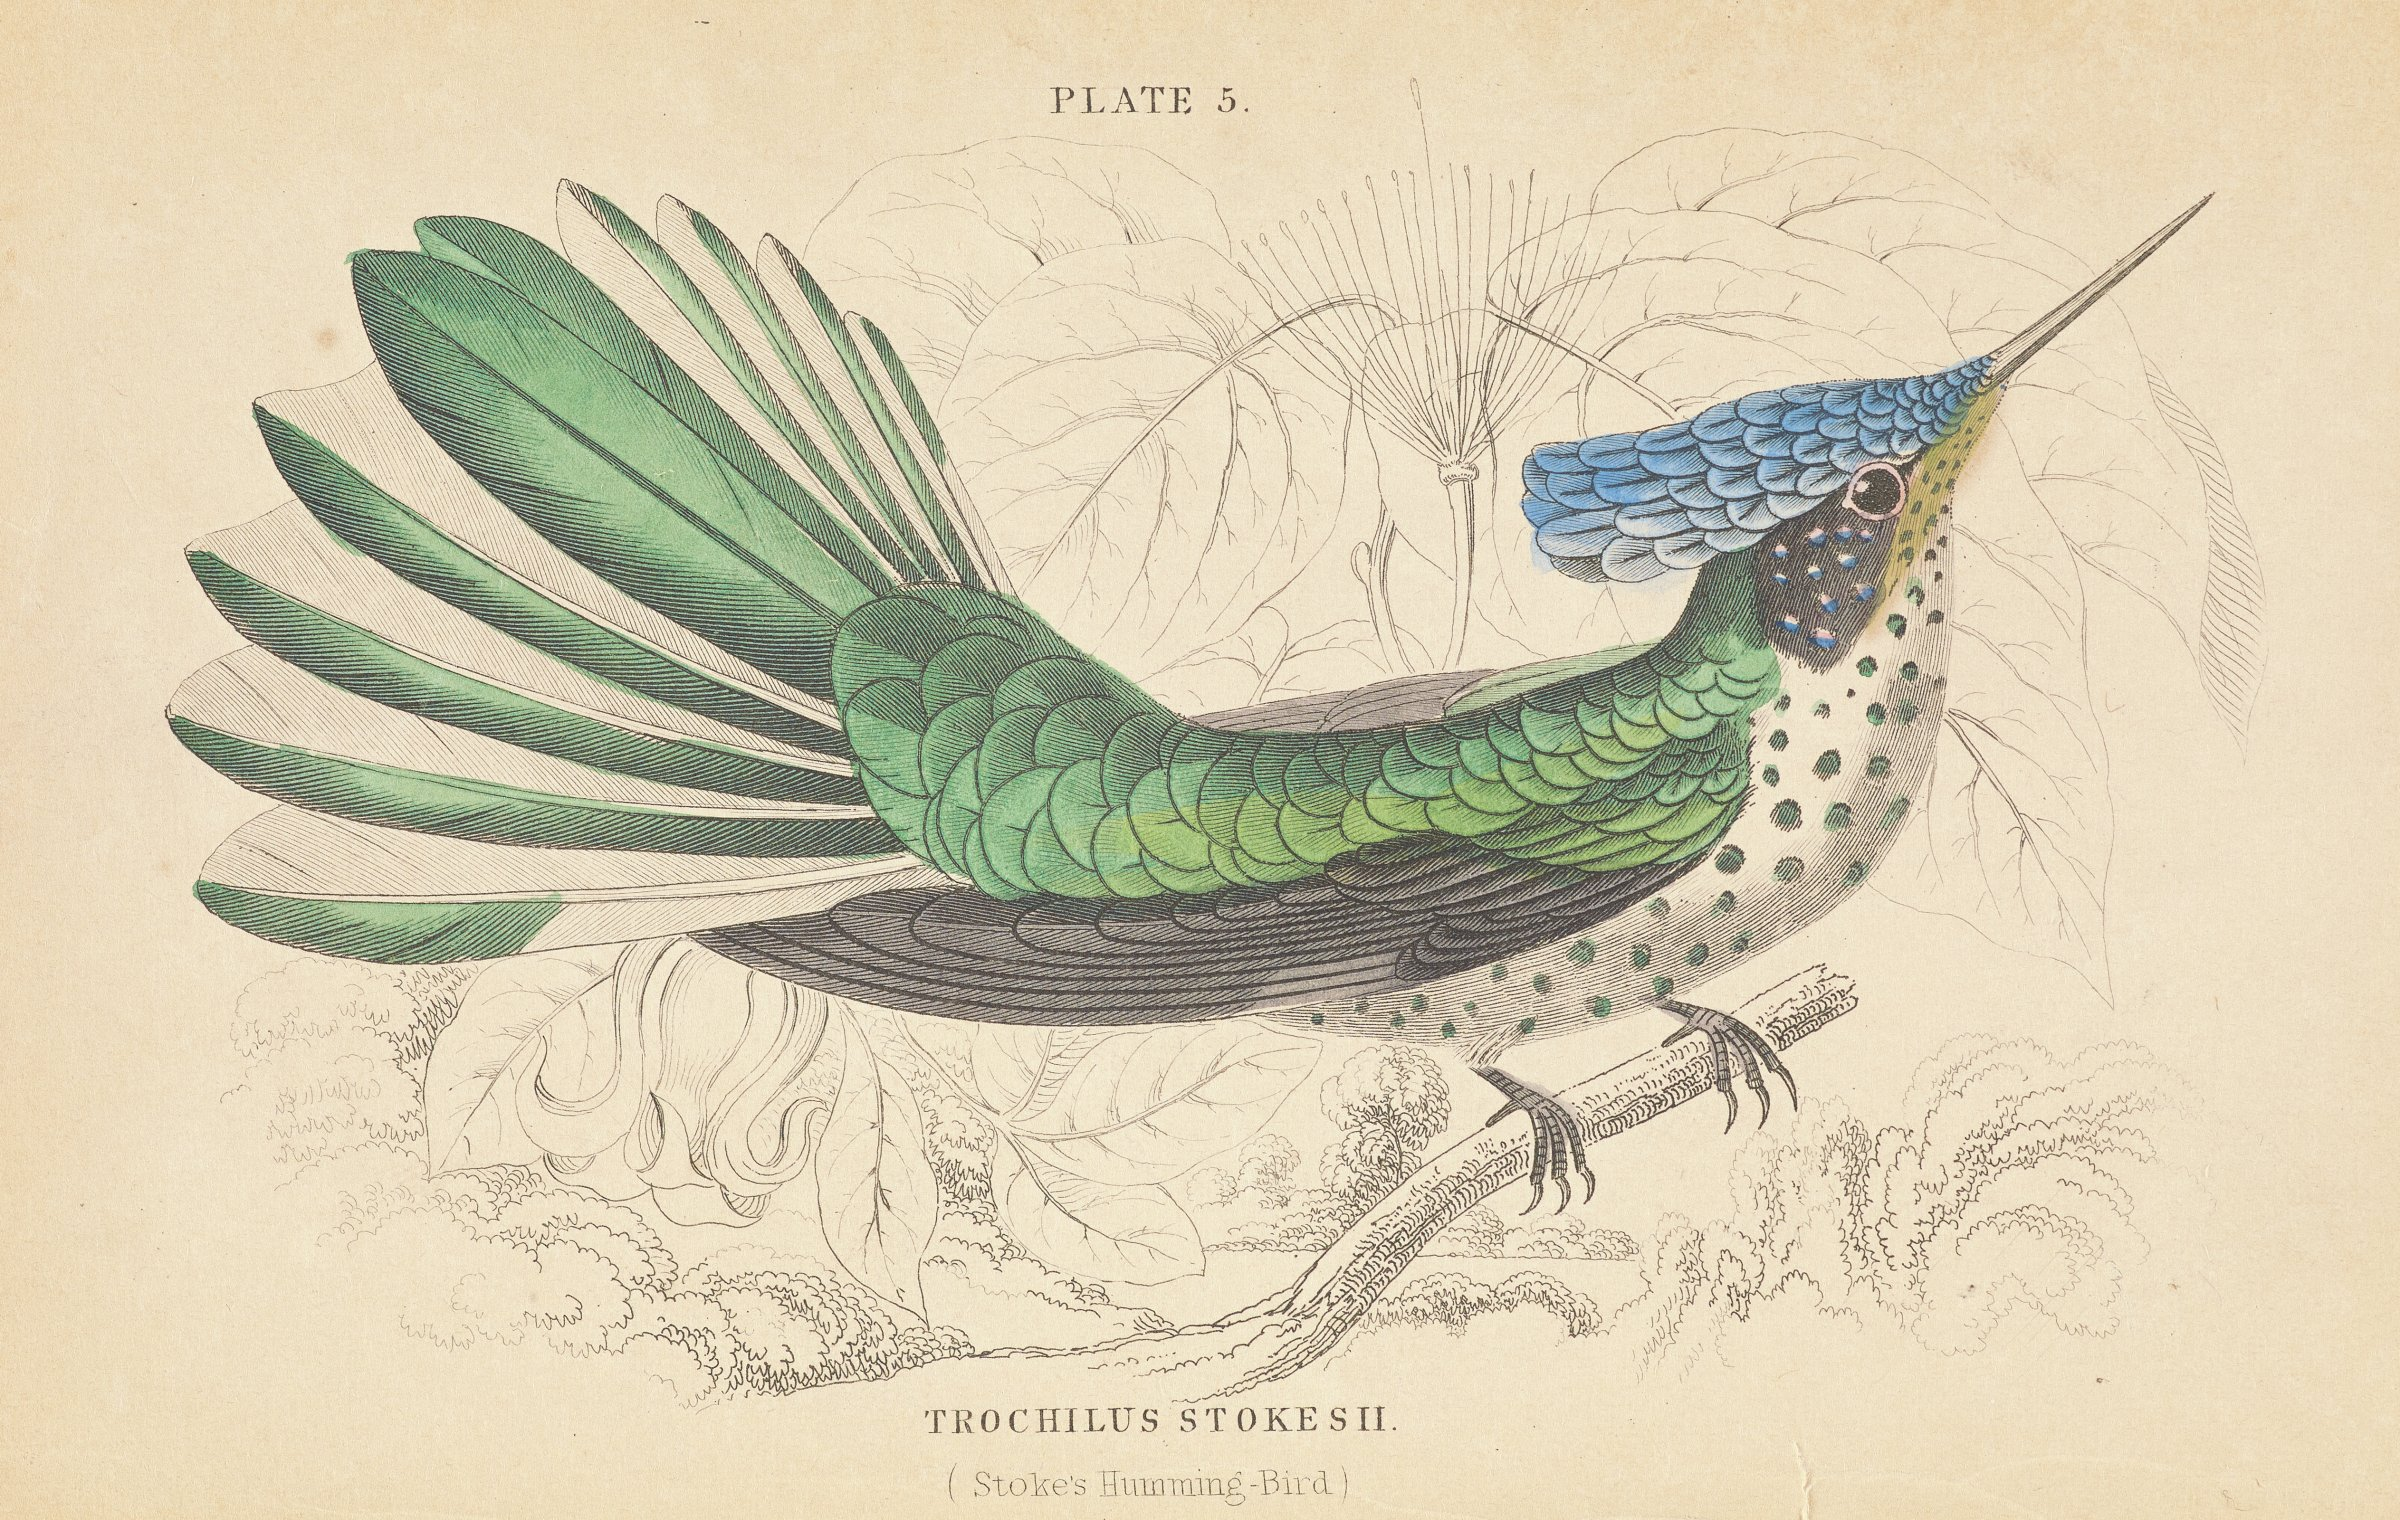 A green, blue, white, and black bird with a long, thin beak stands on a tree branch. The belly and face of the bird are spotted. The background contains uncolored plant life.